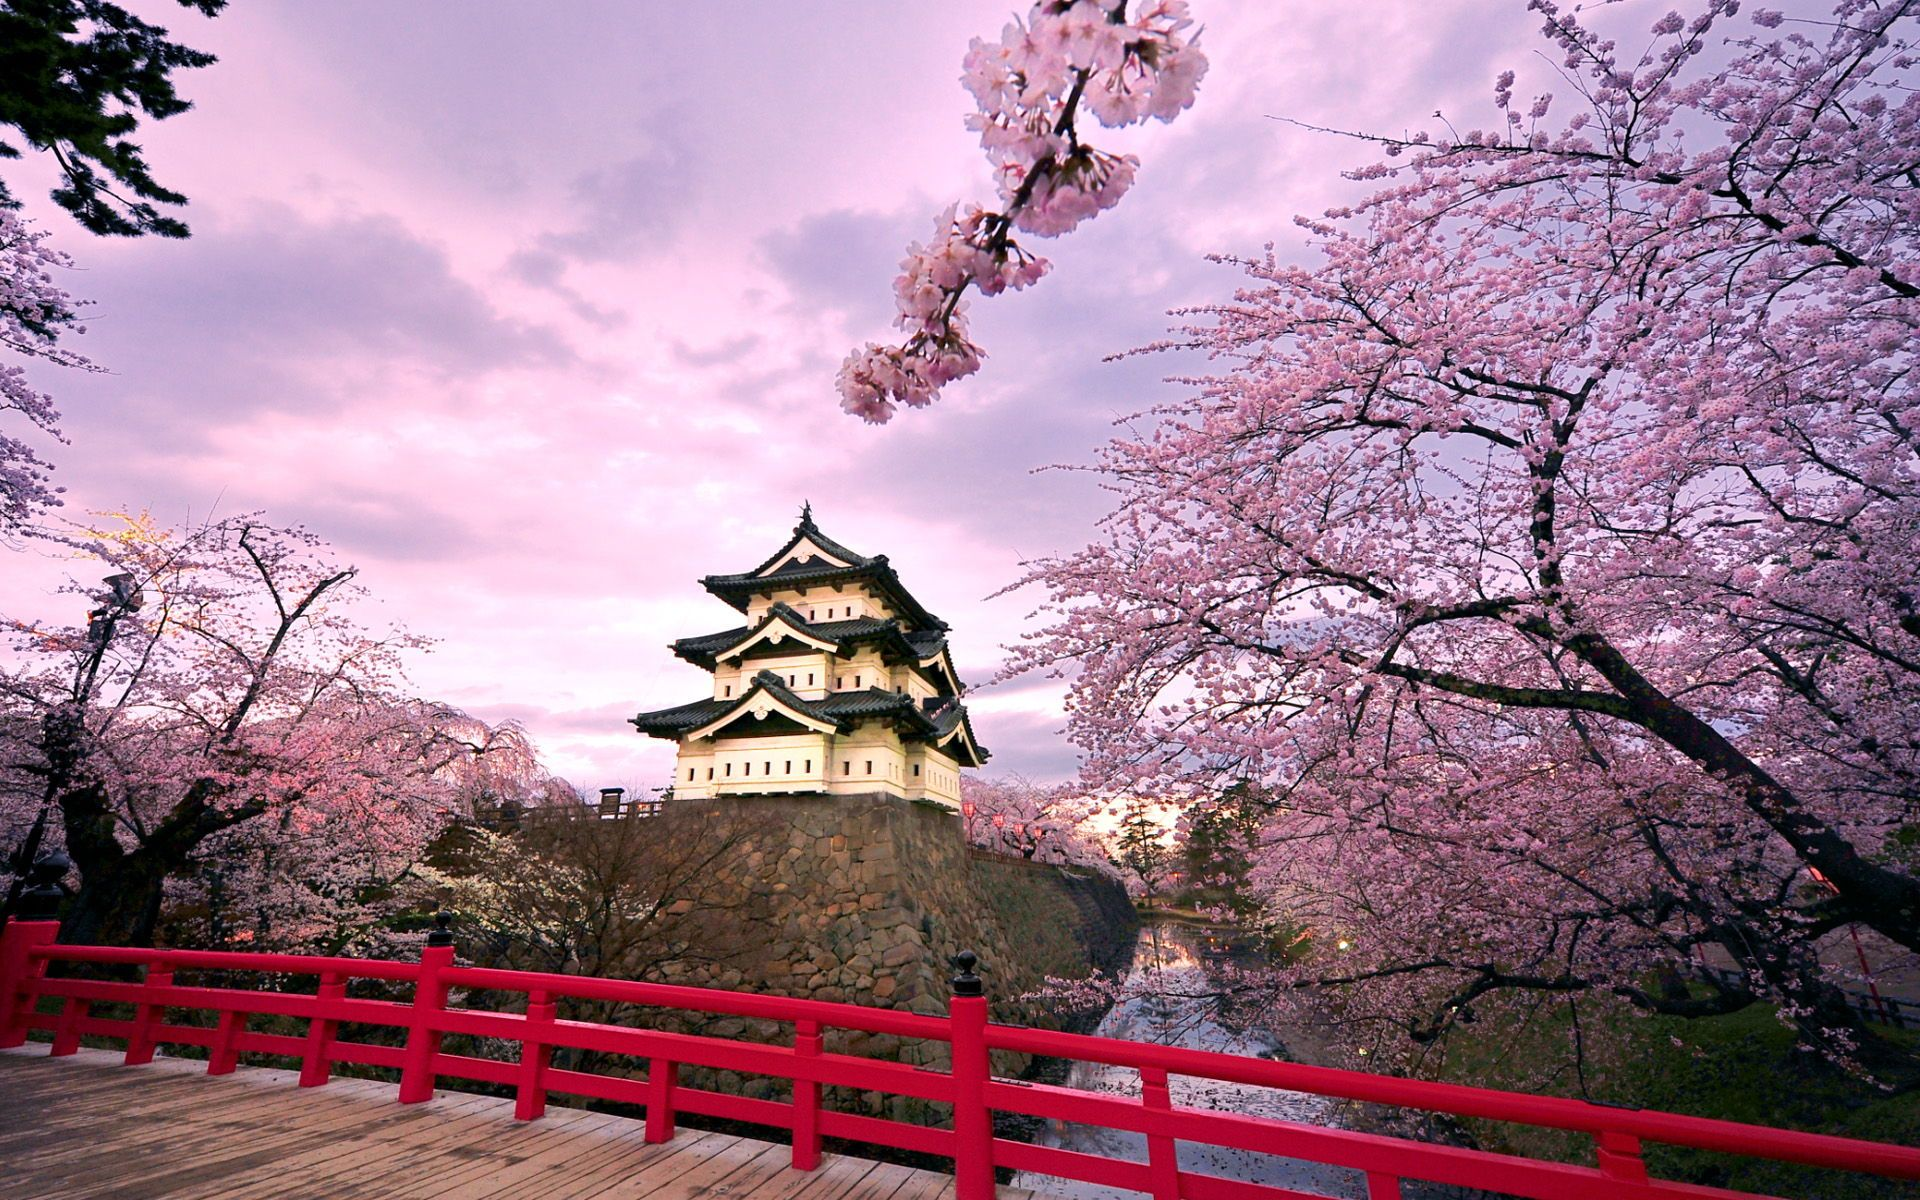 Nature Beautiful Scenery Widescreen High Definition Desktop Wallpaper Background Picture Free Jpg 1920 1200 Hirosaki Japanese Castle Japan Travel